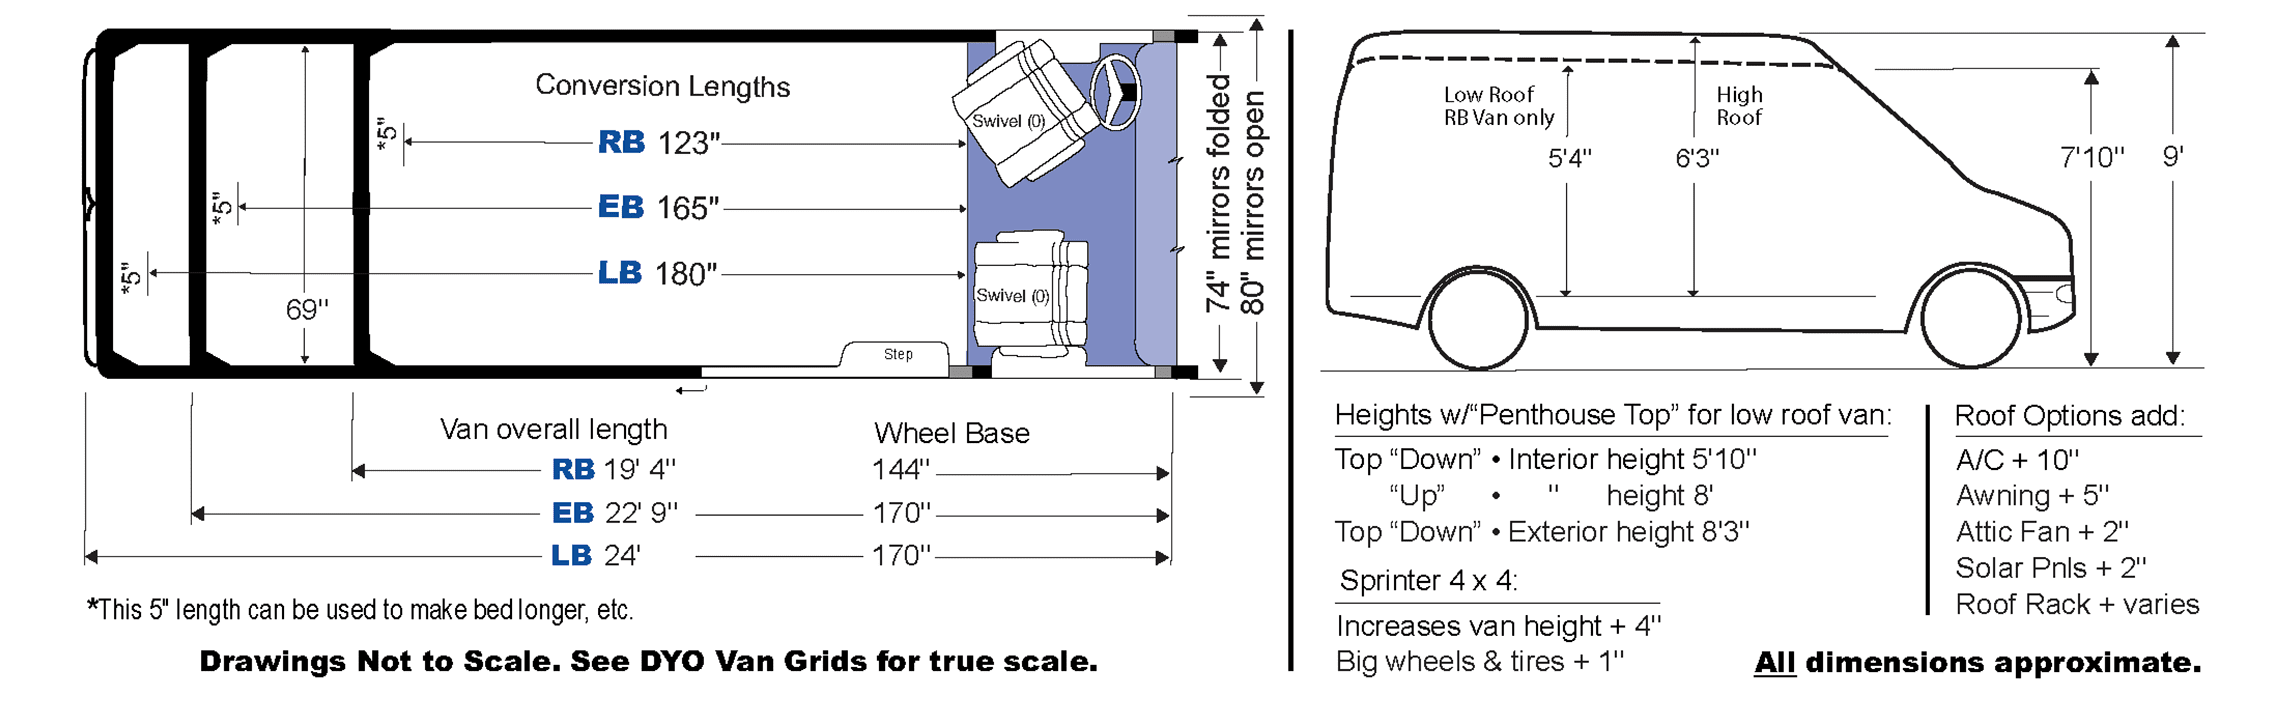 Mercedes-Benz Sprinter Van + Dimensions + Comparisons